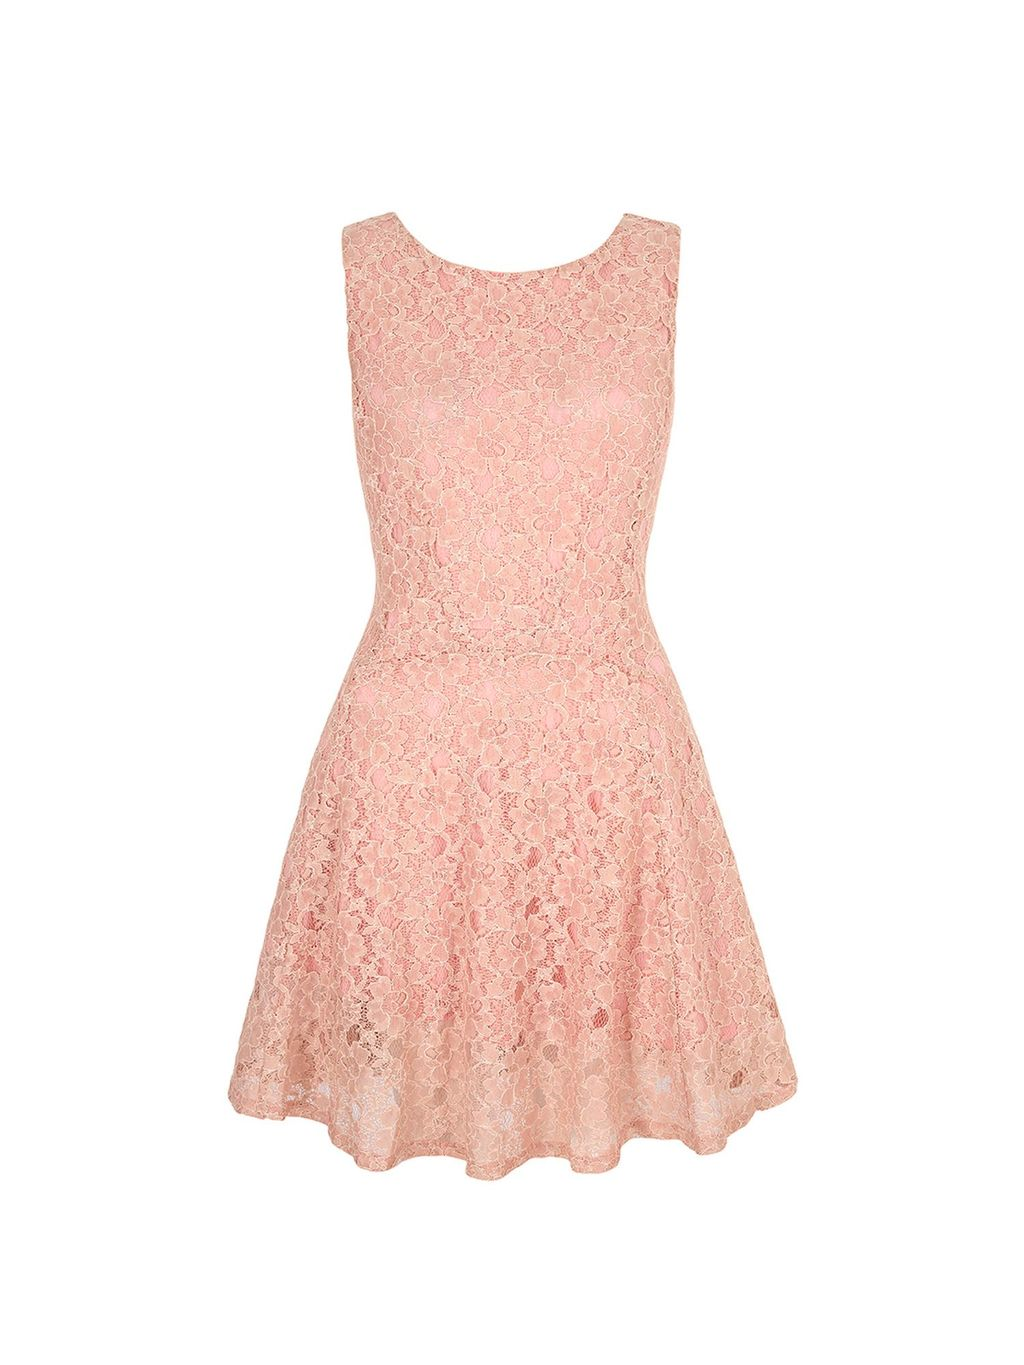 Lace Skater Dress, Blush - length: mid thigh; neckline: round neck; sleeve style: sleeveless; predominant colour: nude; fit: fitted at waist & bust; style: fit & flare; occasions: occasion; sleeve length: sleeveless; texture group: lace; pattern type: fabric; pattern size: standard; pattern: patterned/print; fibres: viscose/rayon - mix; embellishment: lace; season: s/s 2016